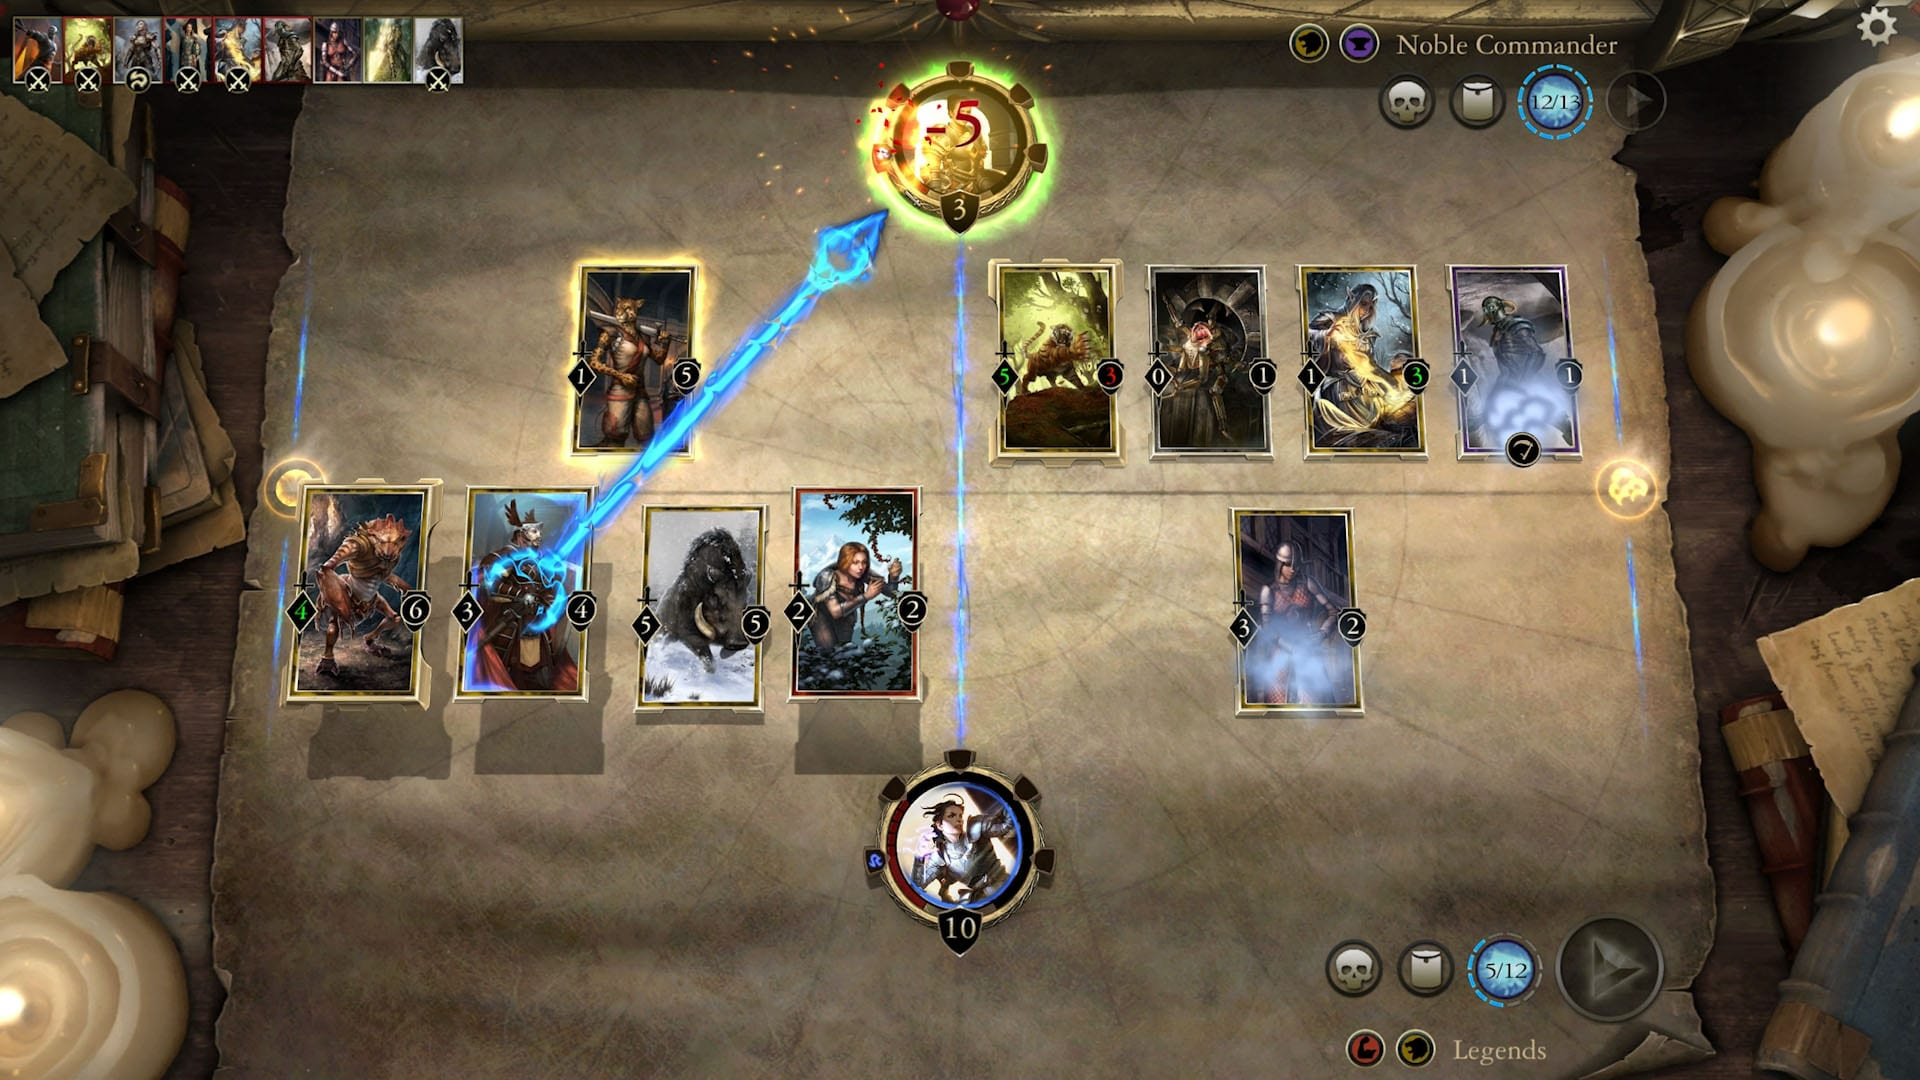 Bethesda has shown off the opening cinematic for The Elder Scrolls Legends